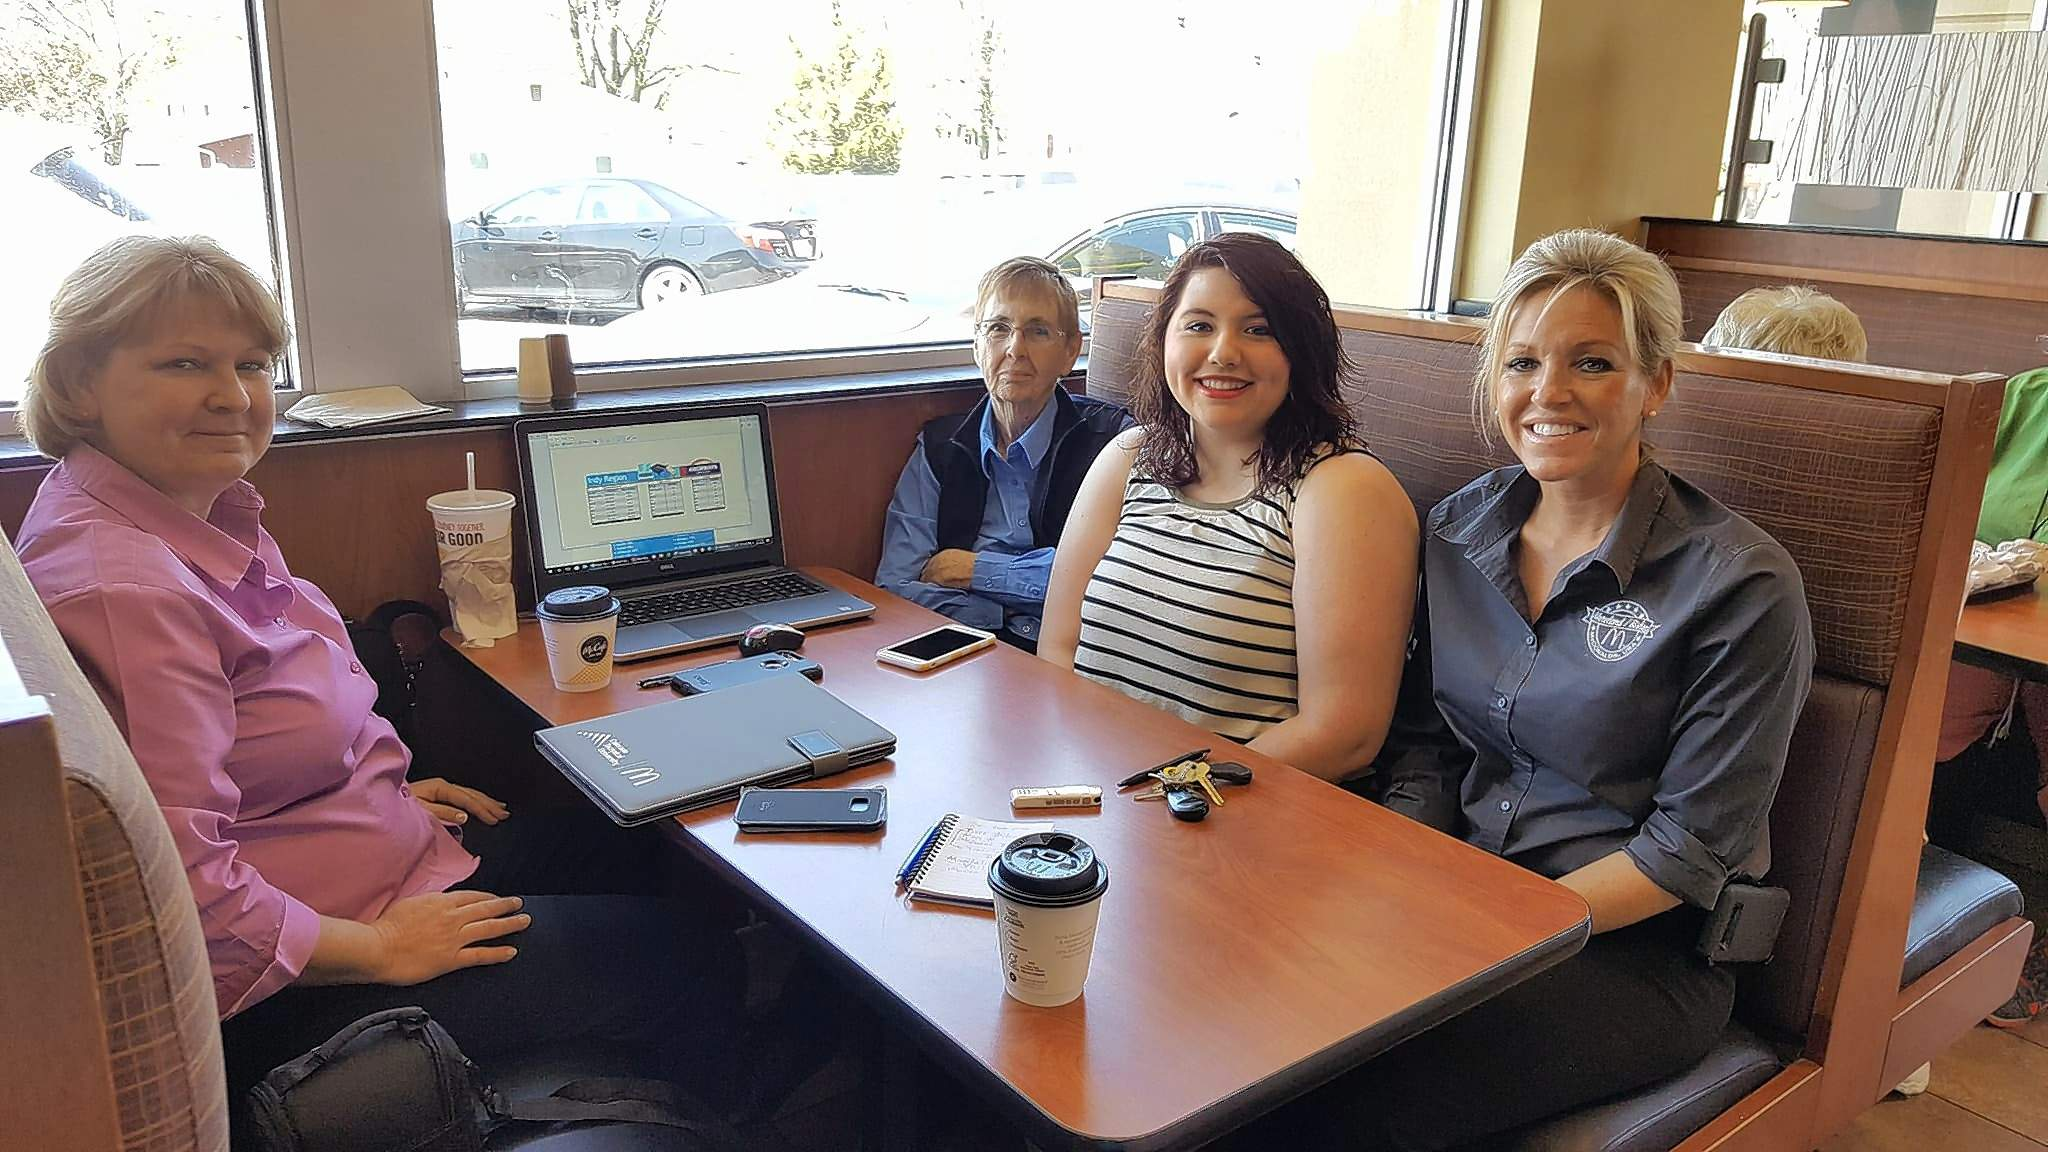 (from left) Crew Trainer Barb Mileur, Mary Moreland, Mandalin Vail, and Stephanie Bishop discuss the Archways program at the Marion Court Street McDonalds.